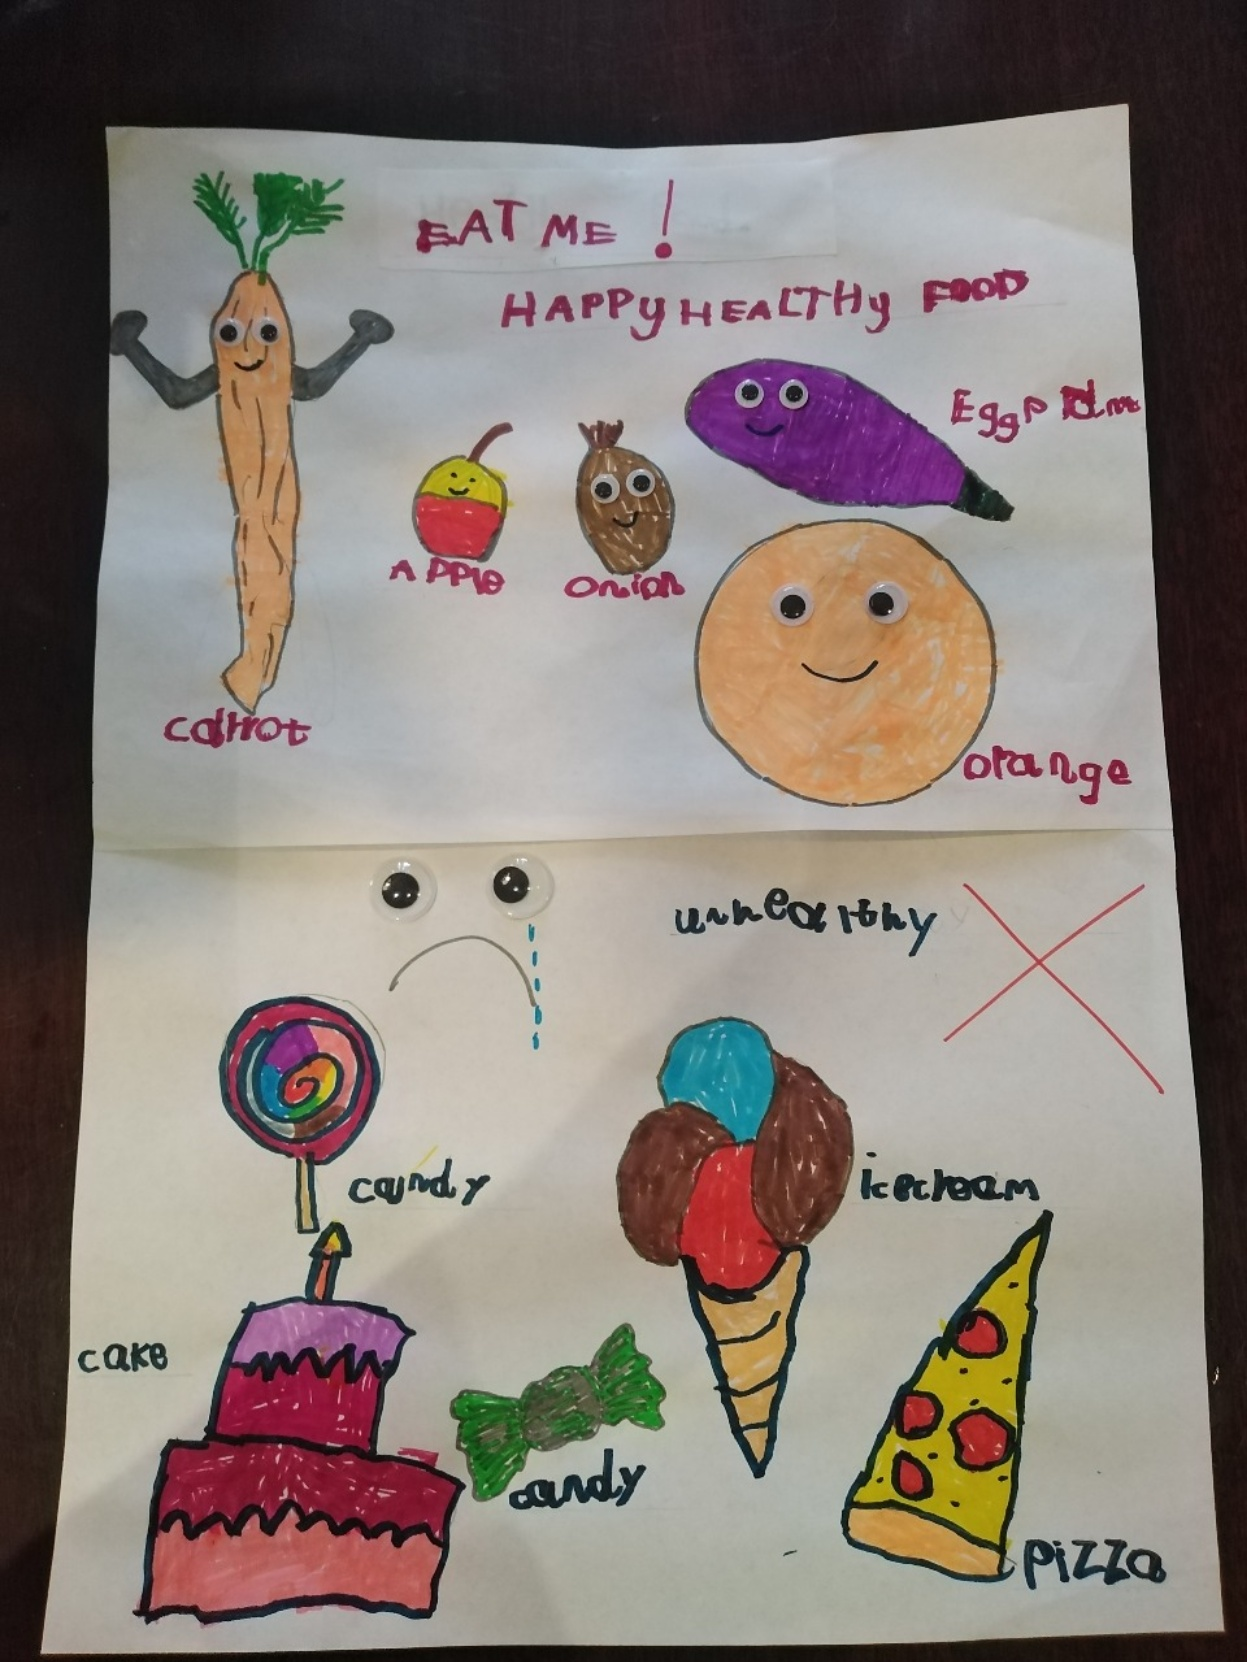 Sophie's healthy food poster!